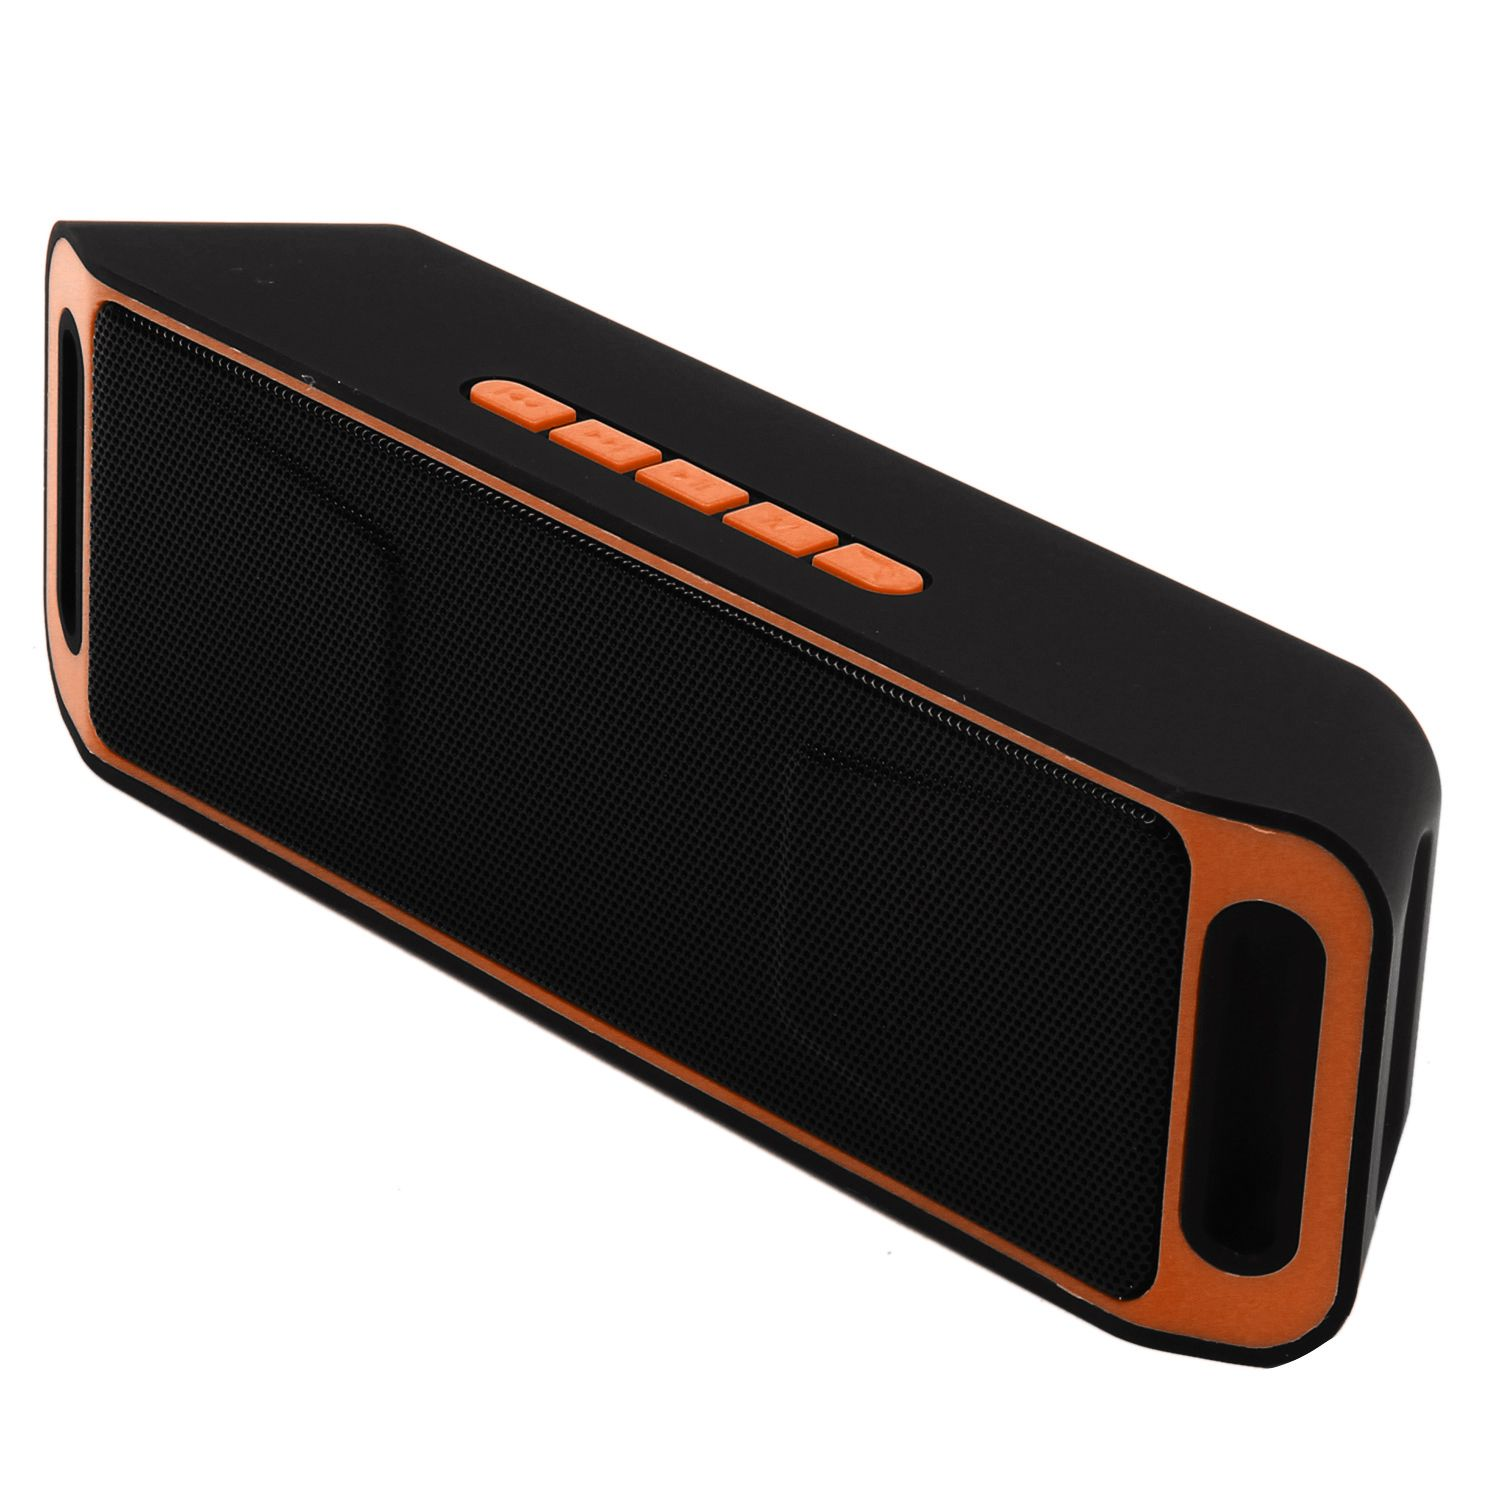 Mini Wireless Bluetooth Speaker USB FM Radio Stereo Super Bass MP3 Player Orange ufo shape portable mini rechargeable bluetooth v2 1 speaker black orange